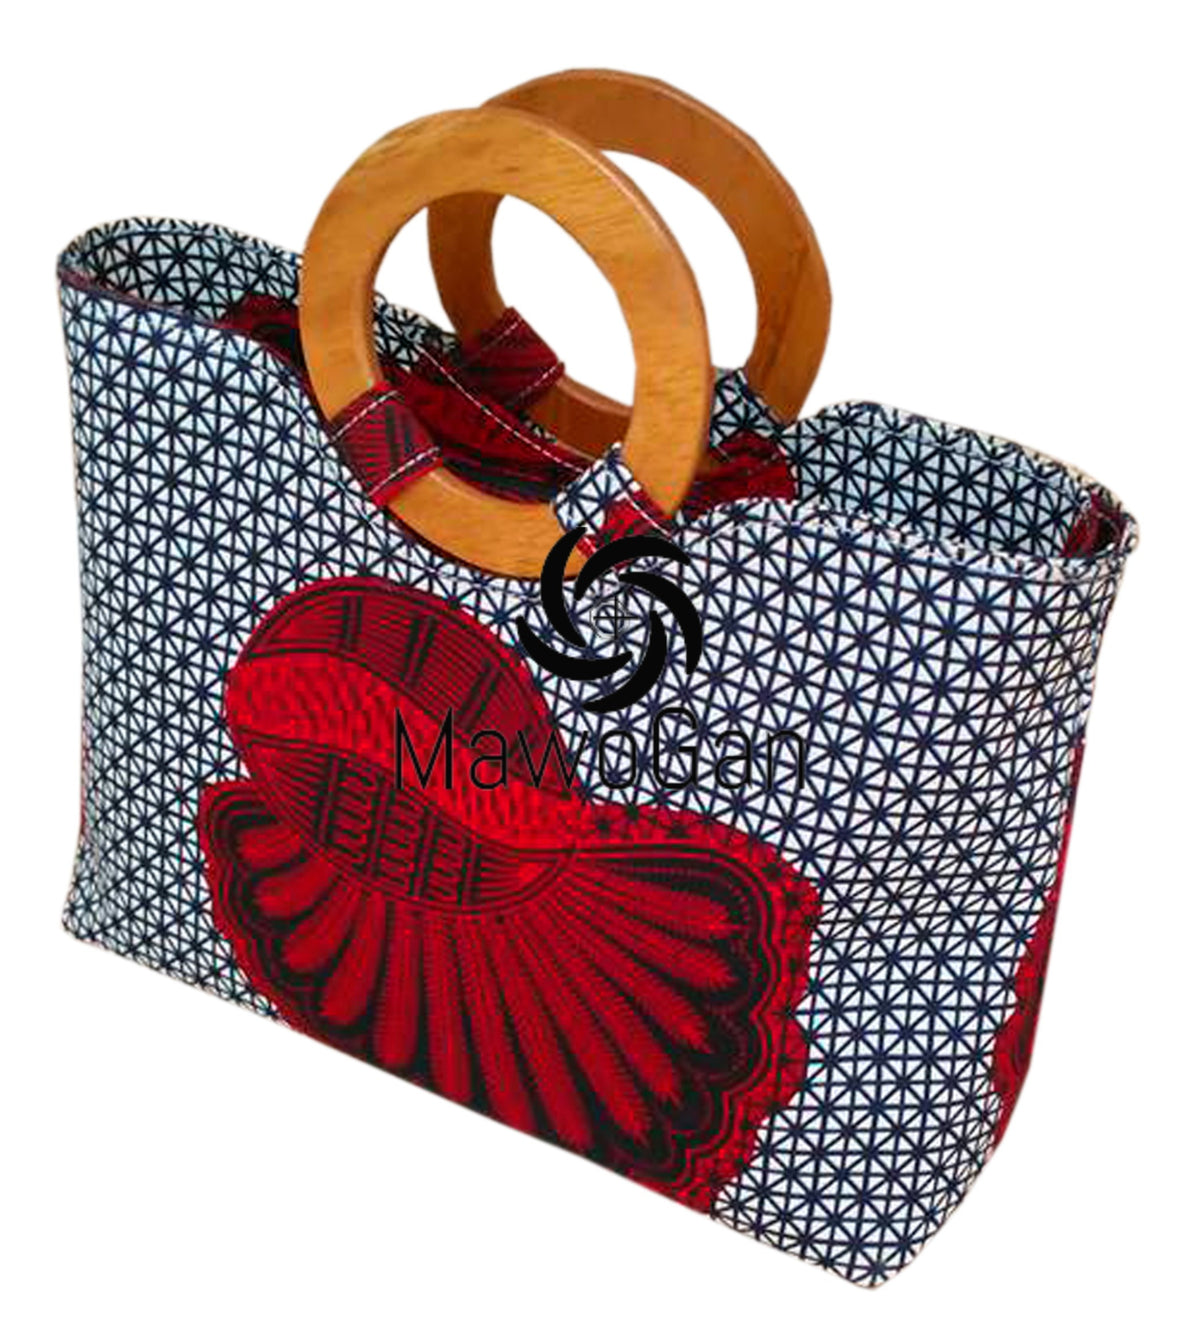 Wood Handle Square African bag Ghana Fabric